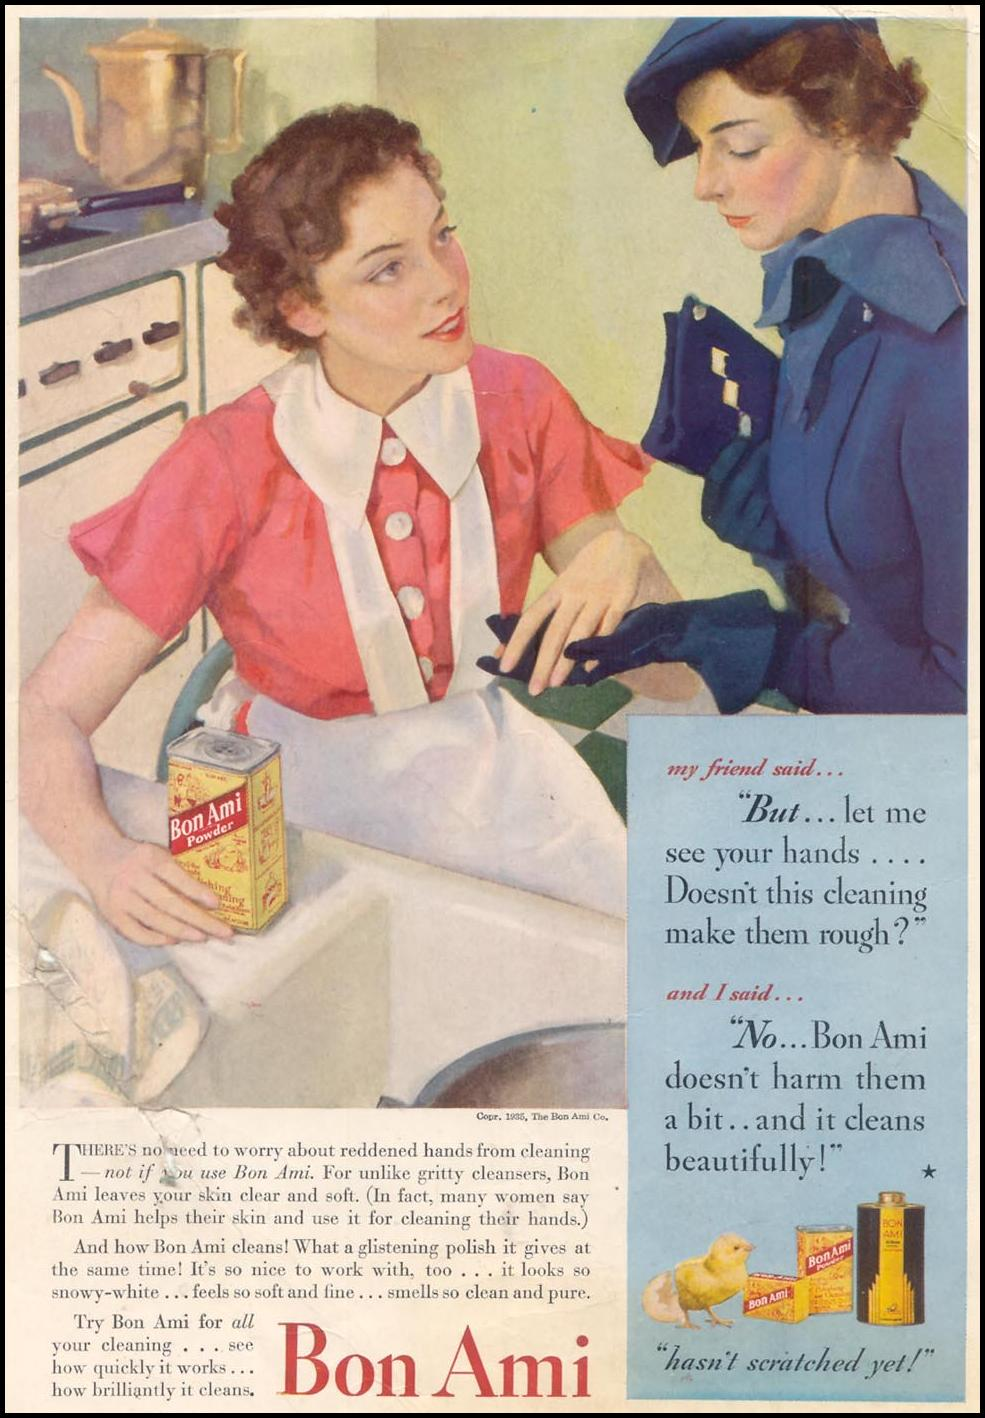 BON AMI CLEANSER GOOD HOUSEKEEPING 03/01/1935 INSIDE FRONT